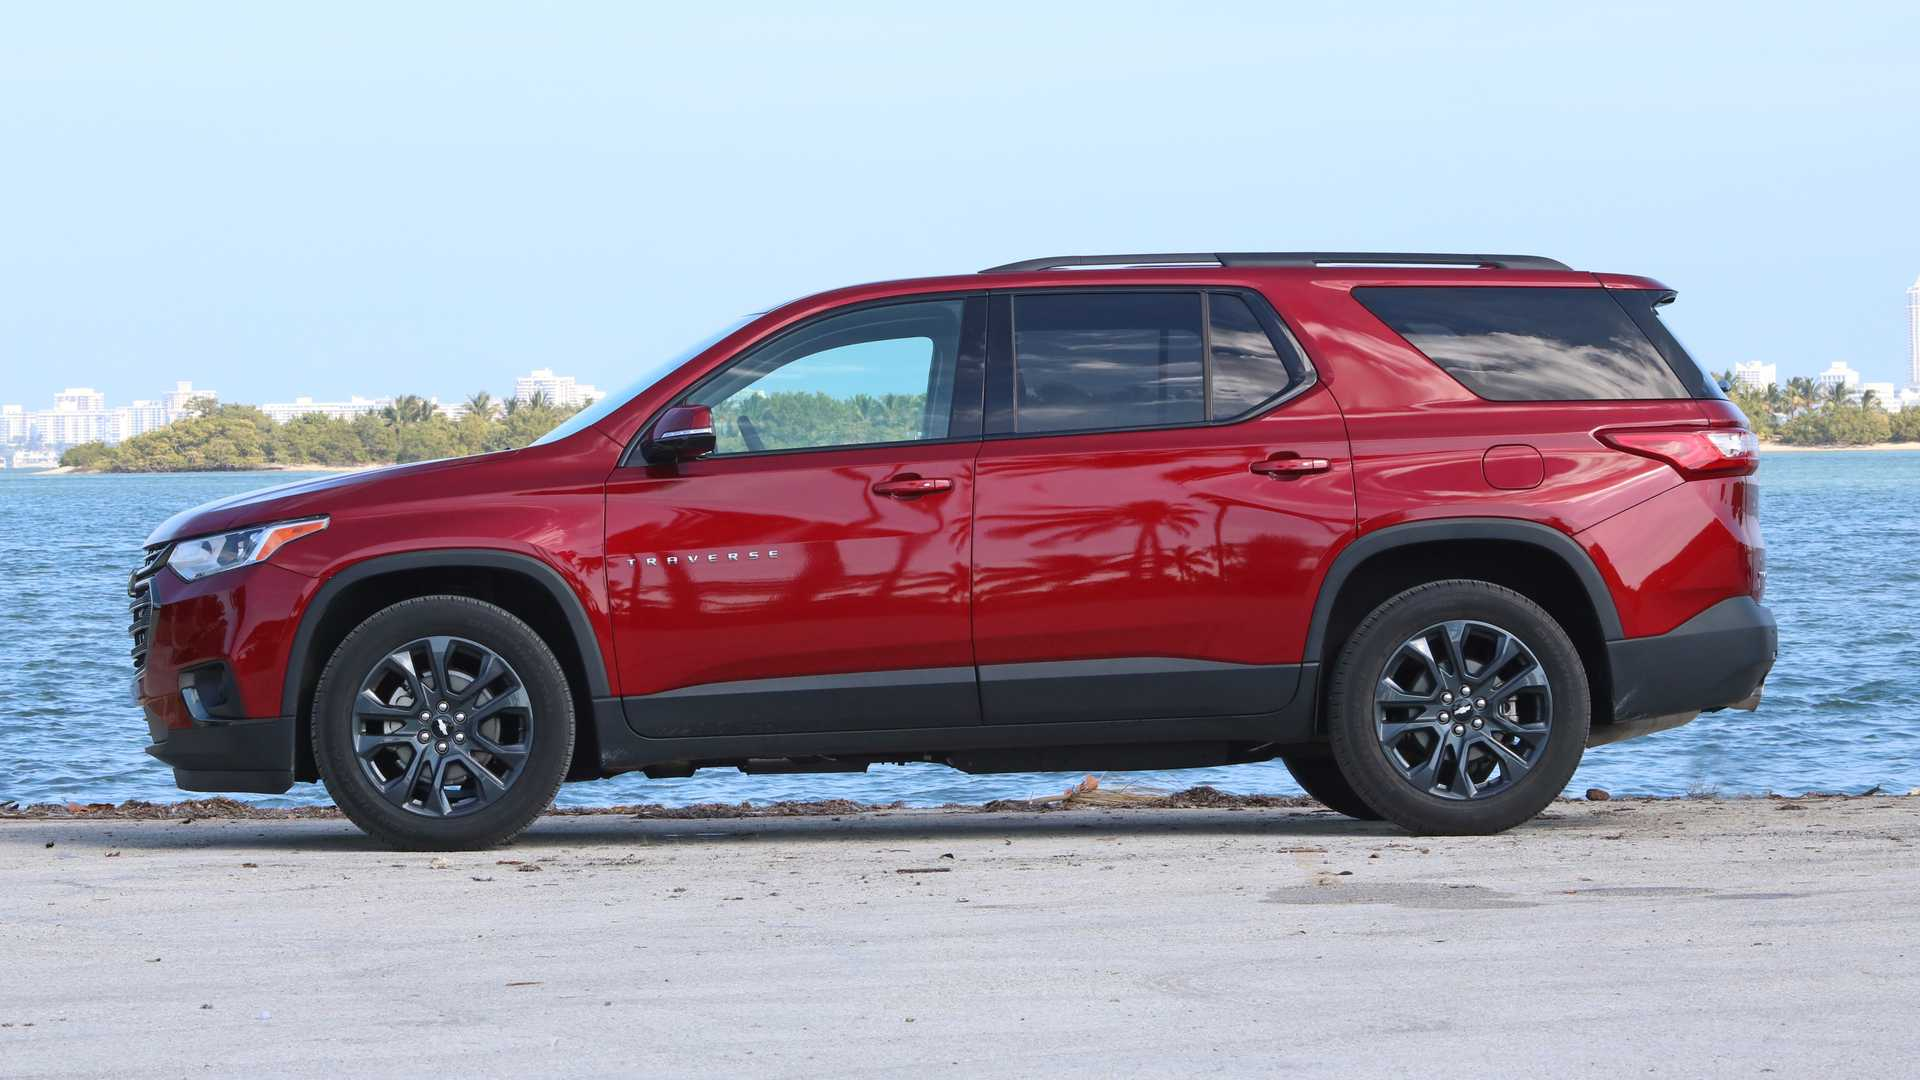 2019 Chevrolet Traverse vs  2019 Honda Pilot Comparison: 3